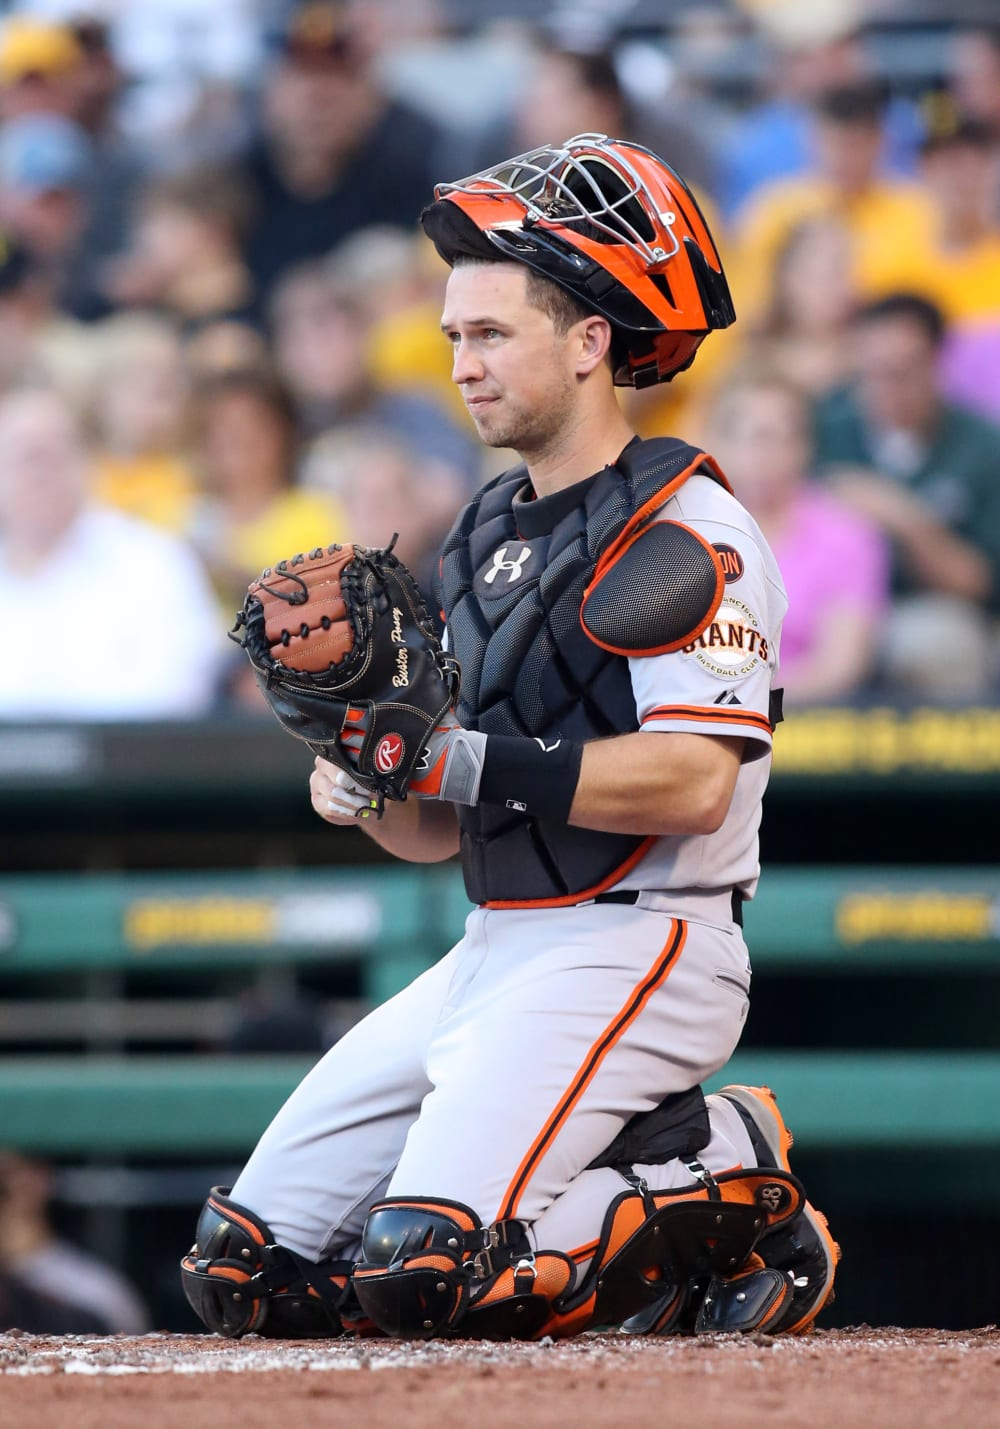 Aug 20, 2015; Pittsburgh, PA, USA; San Francisco Giants catcher Buster Posey (28) kneels behind home plate against the Pittsburgh Pirates during the first inning at PNC Park. Mandatory Credit: Charles LeClaire-USA TODAY Sports